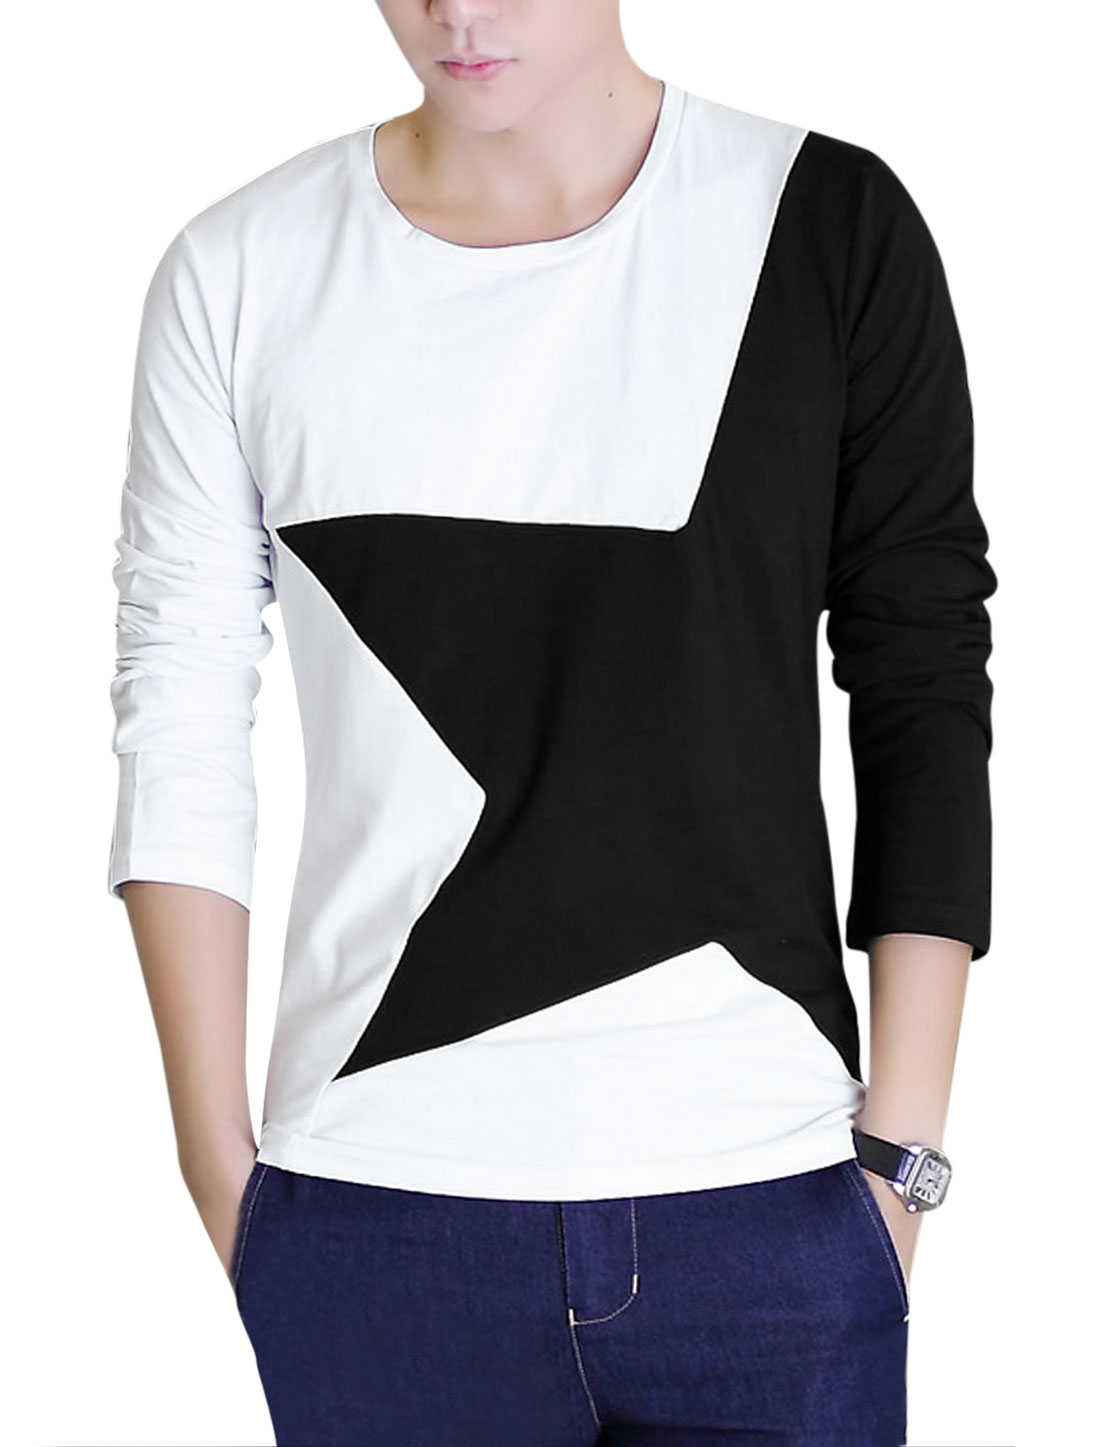 Men Round Neck Stars Pattern Contrast Color Trimed Casual Shirt White Black M